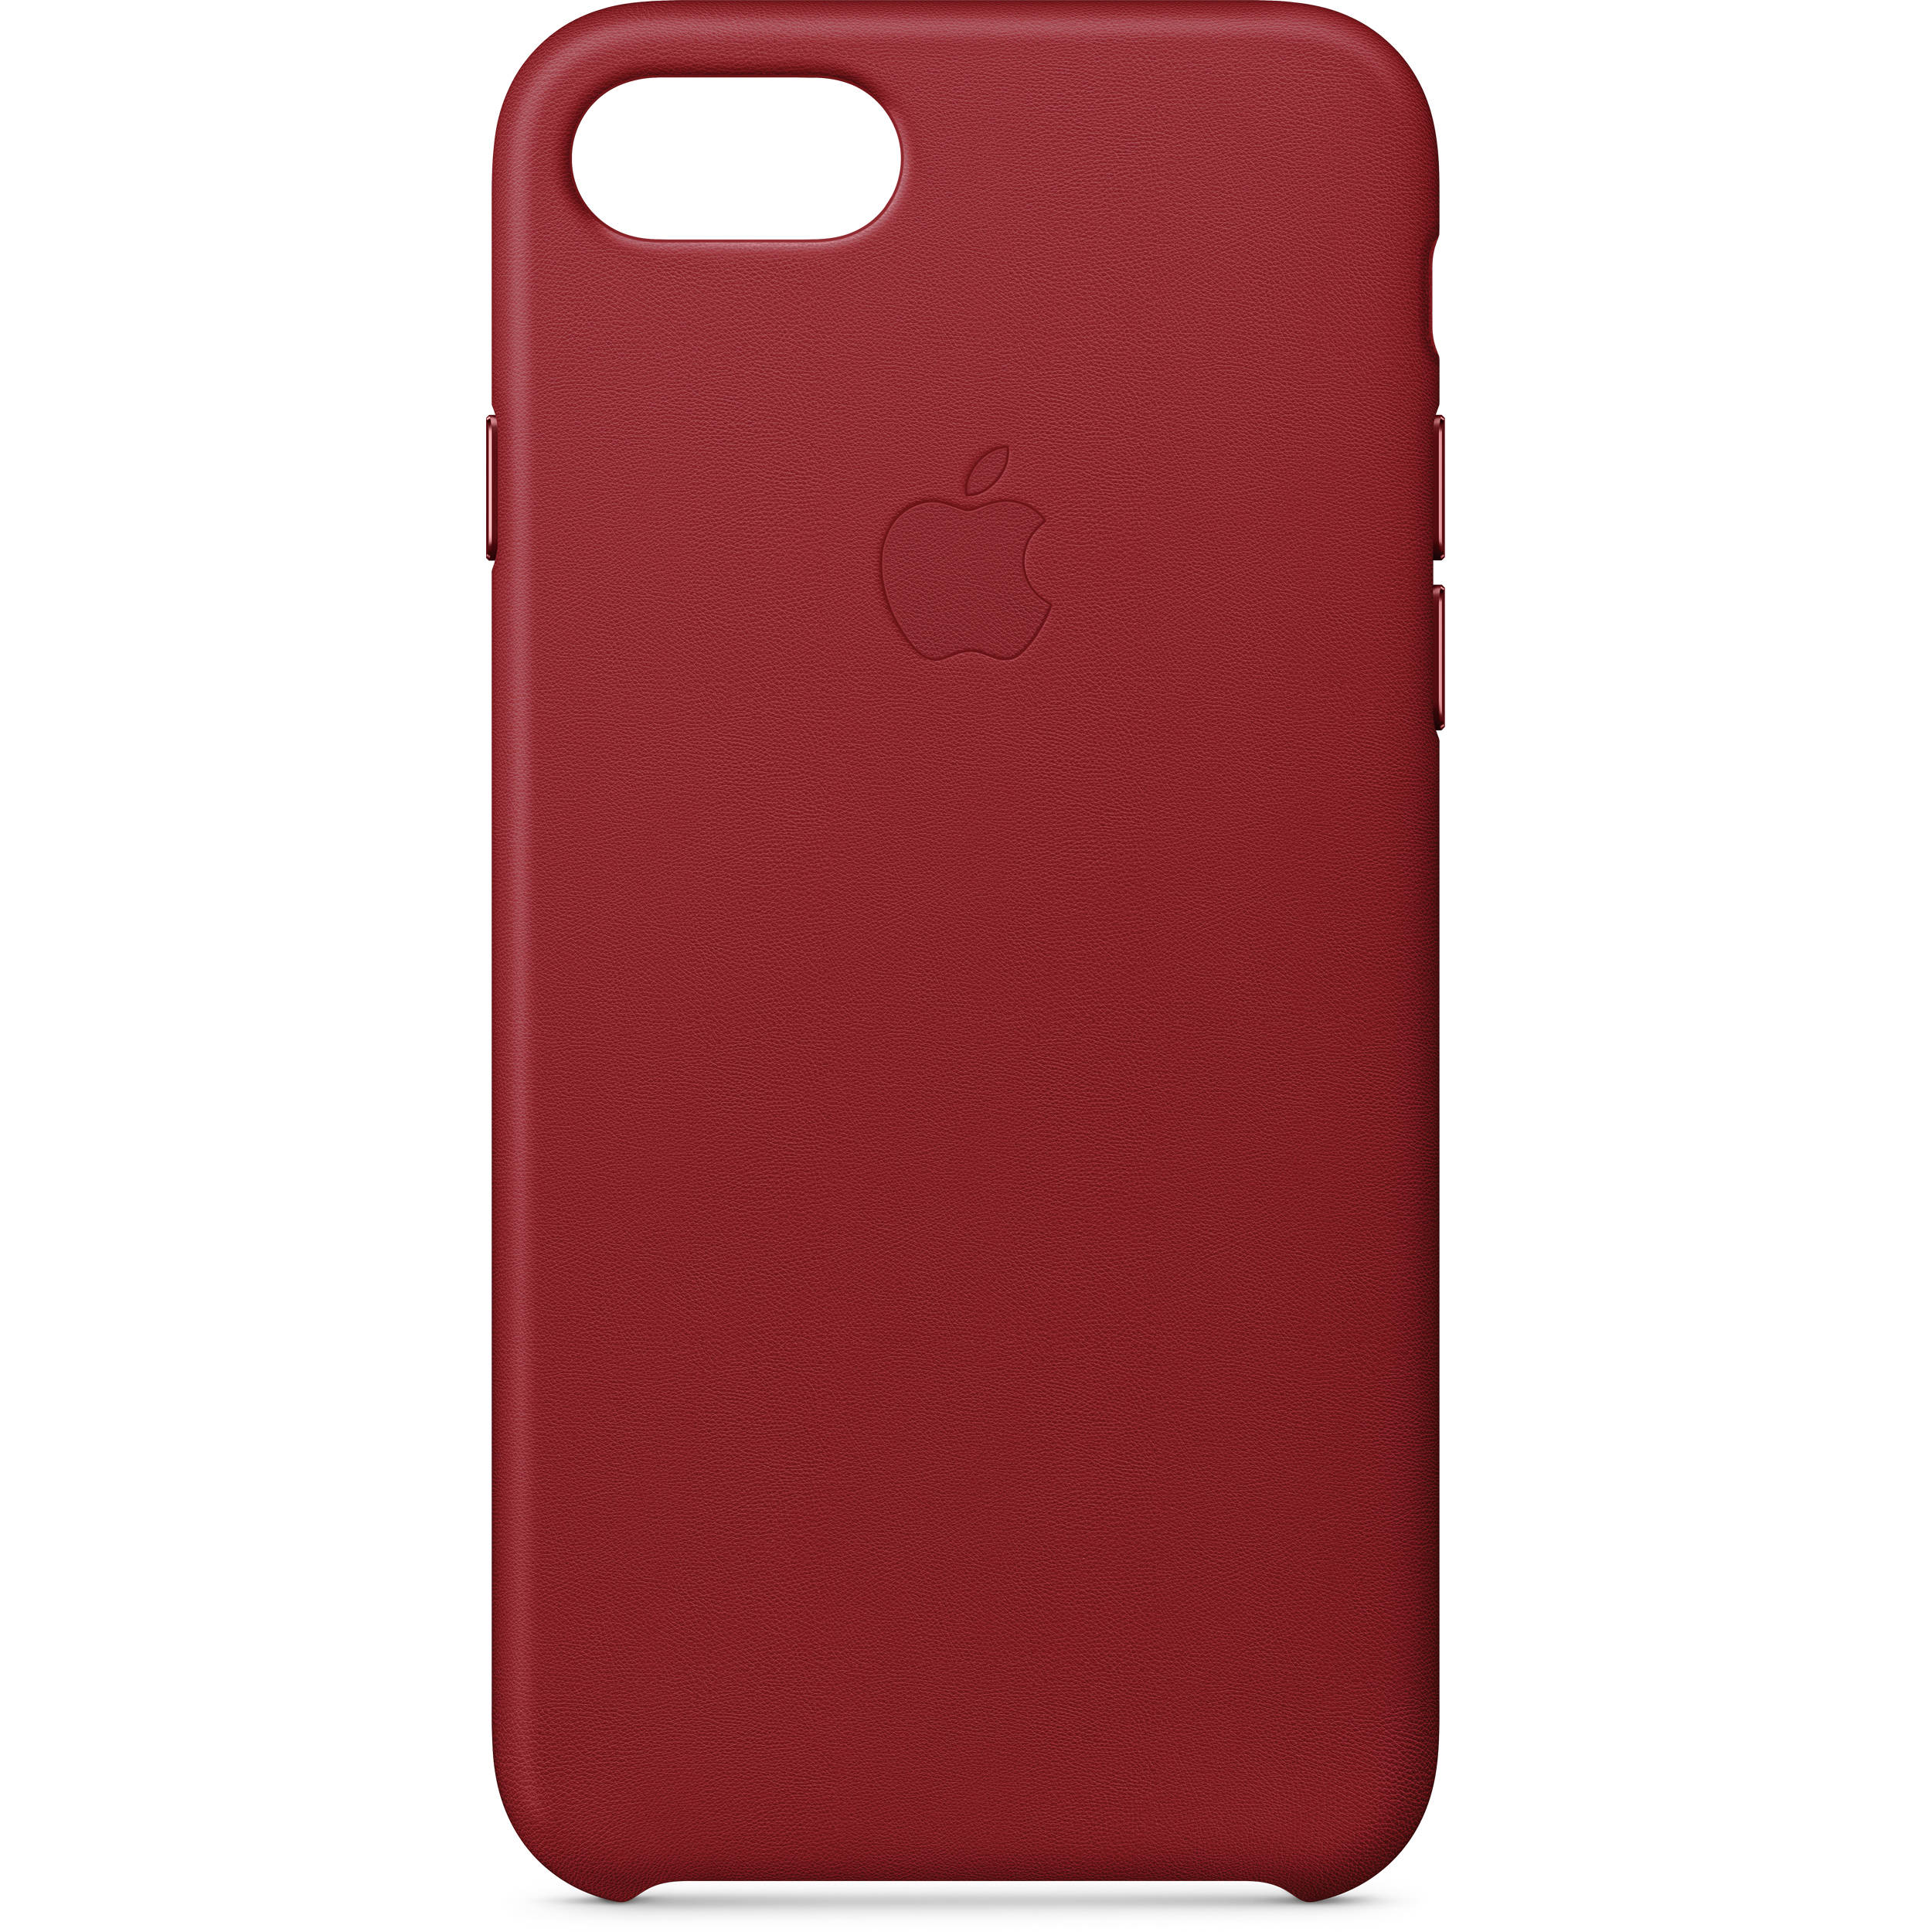 apple phone case iphone 8